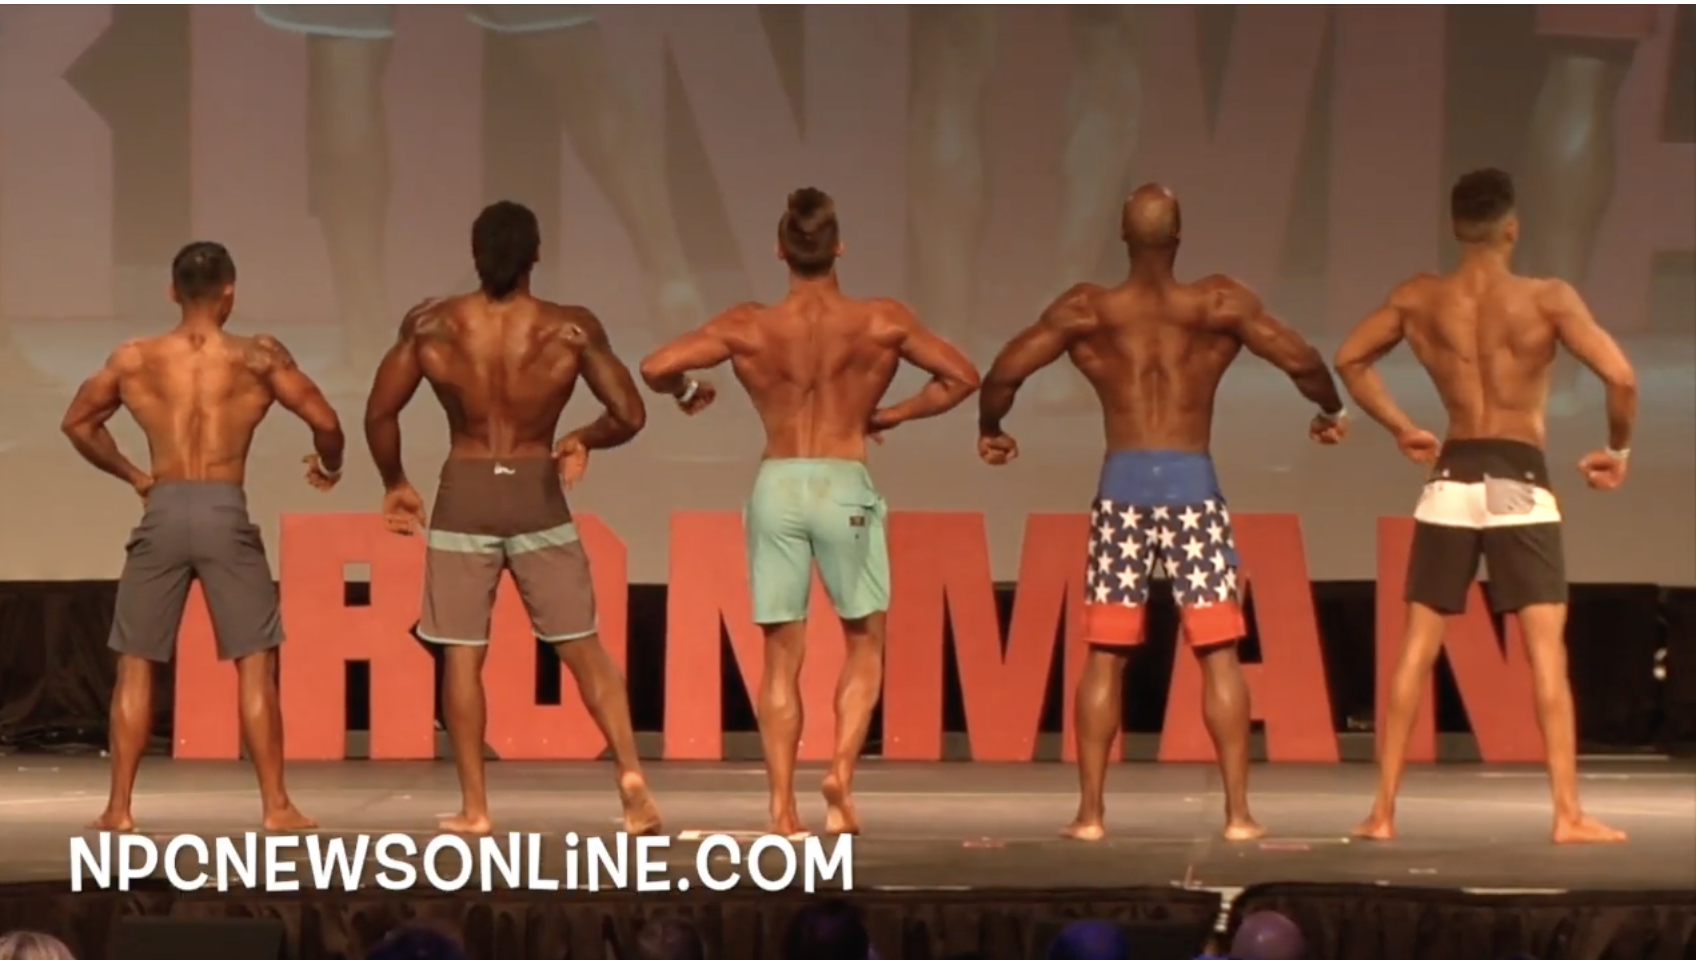 2017 NPC Washington Ironman Men's Physique Overall Video.